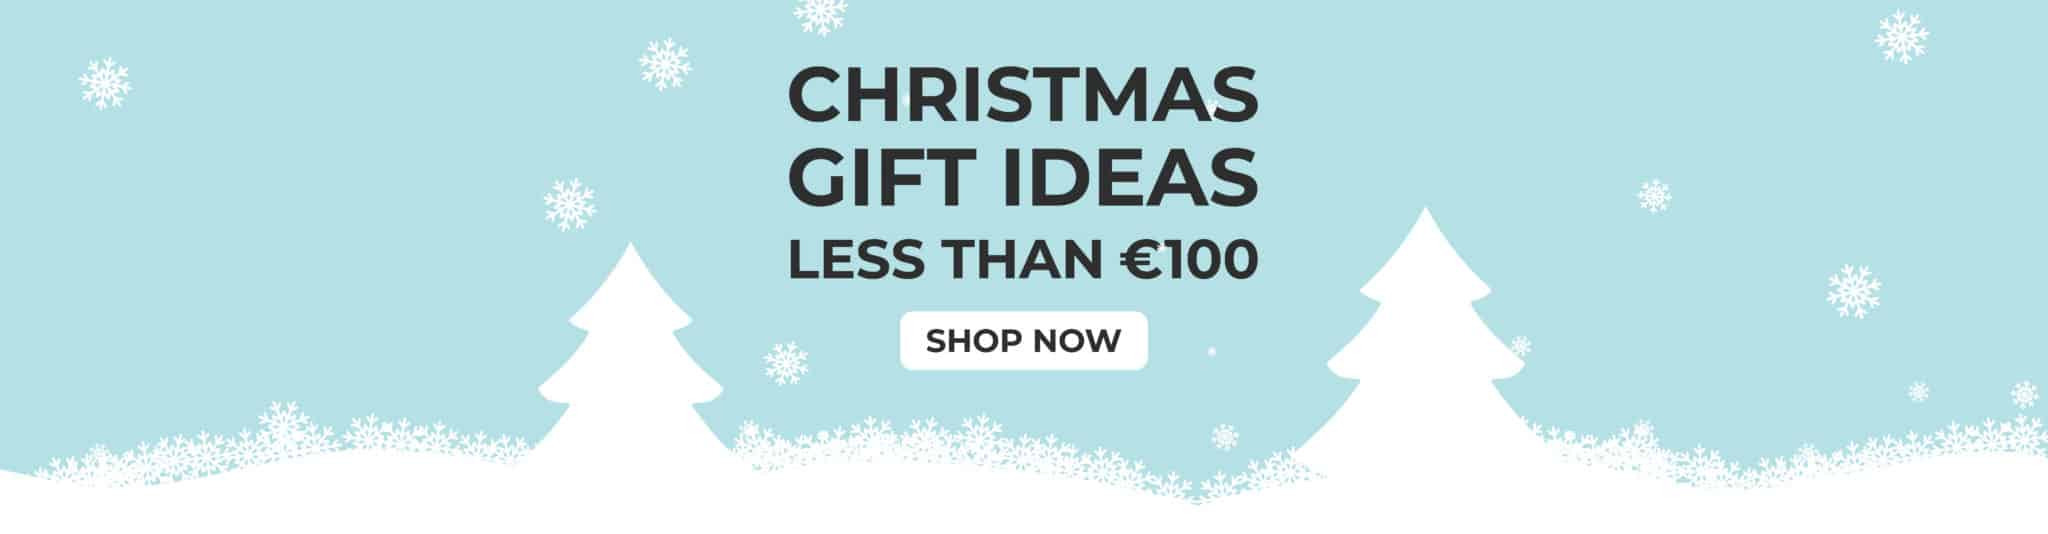 Gifts Less Than €100